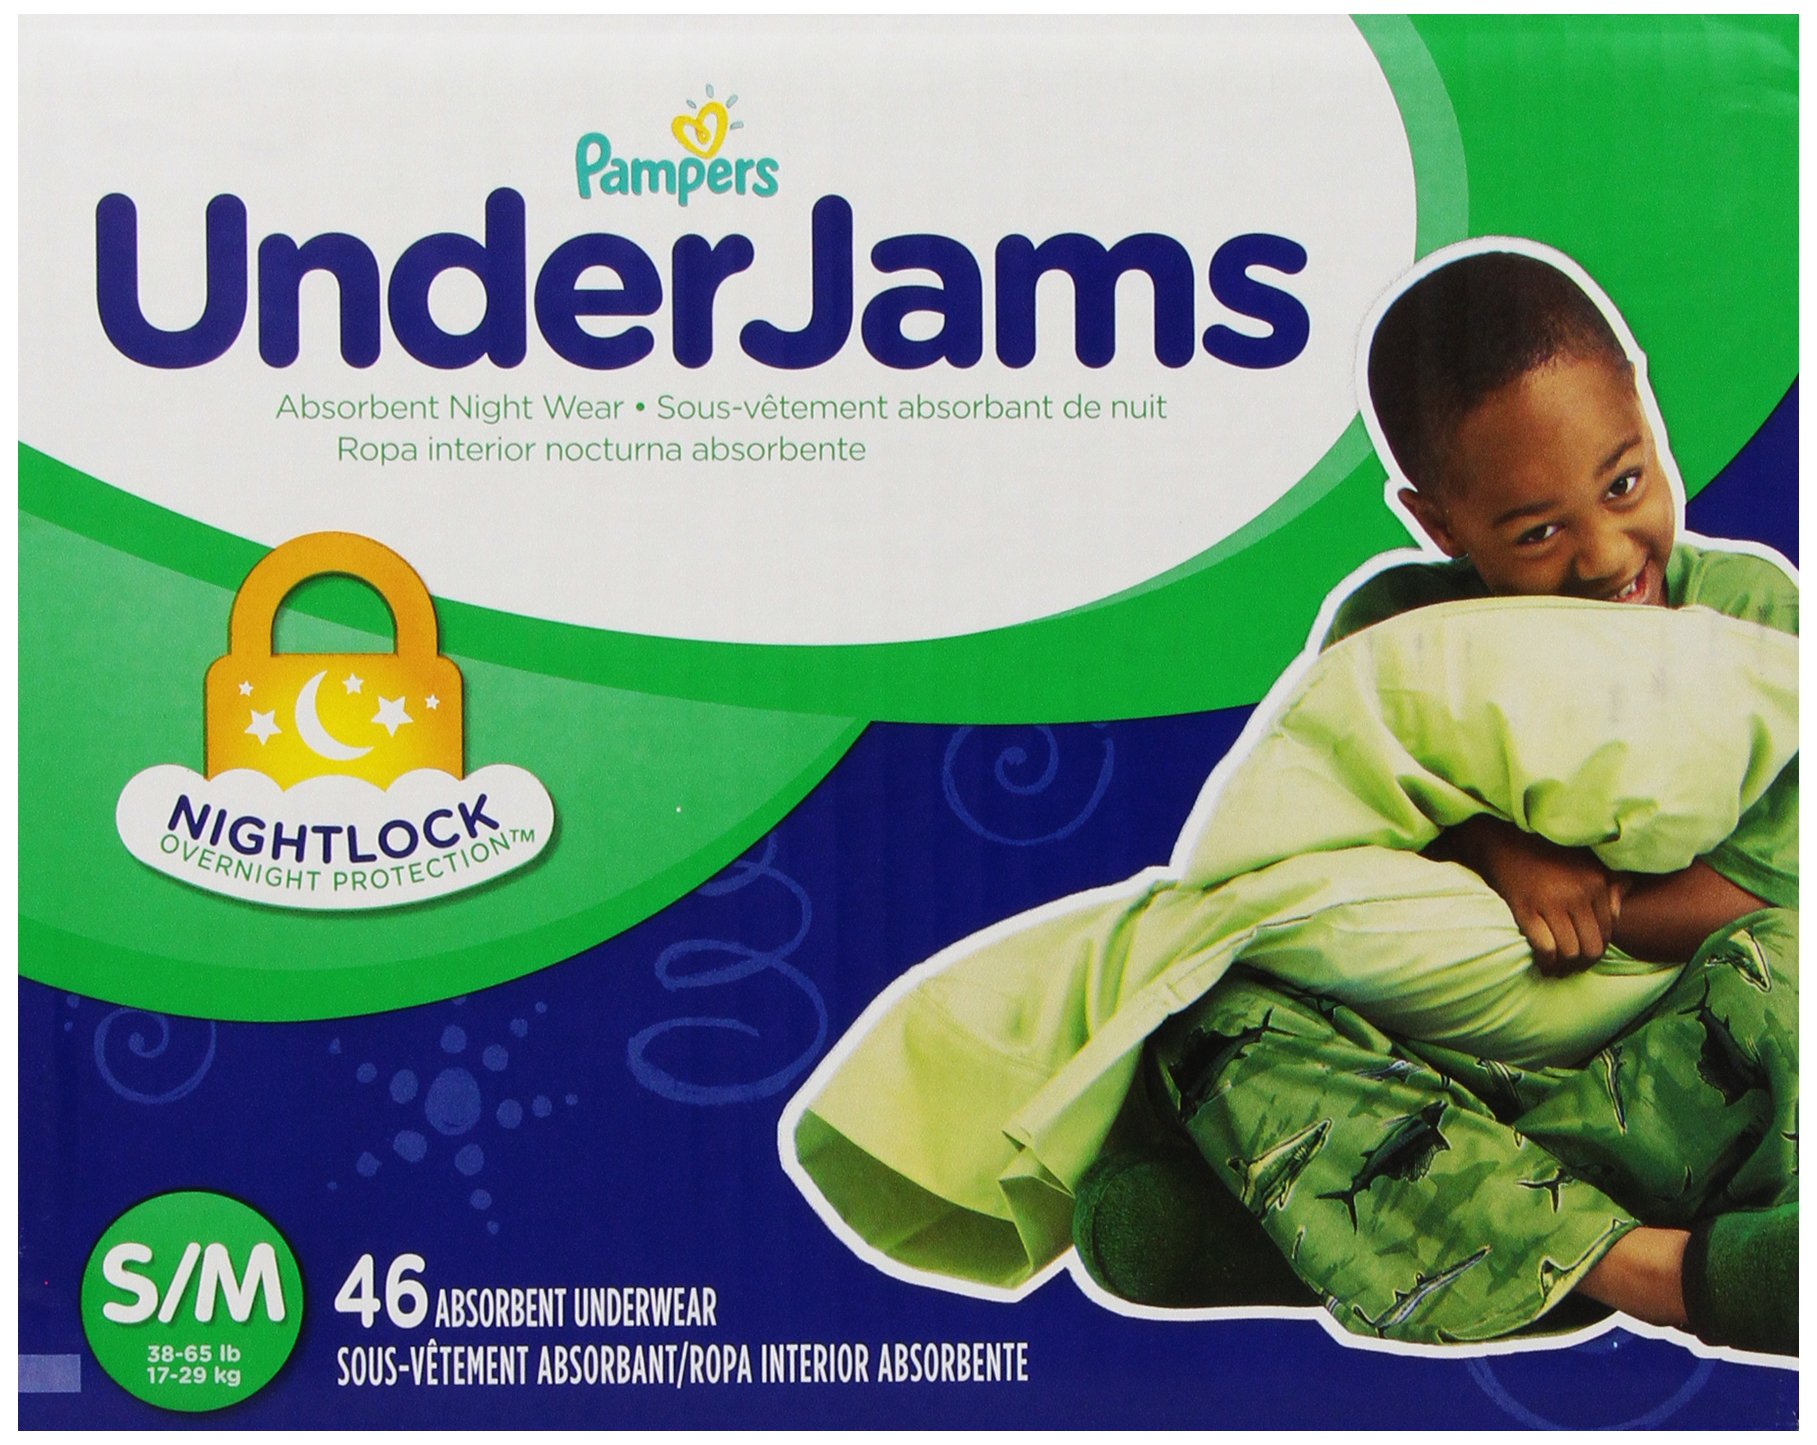 Pampers UnderJams Size 7, 46 Count product image